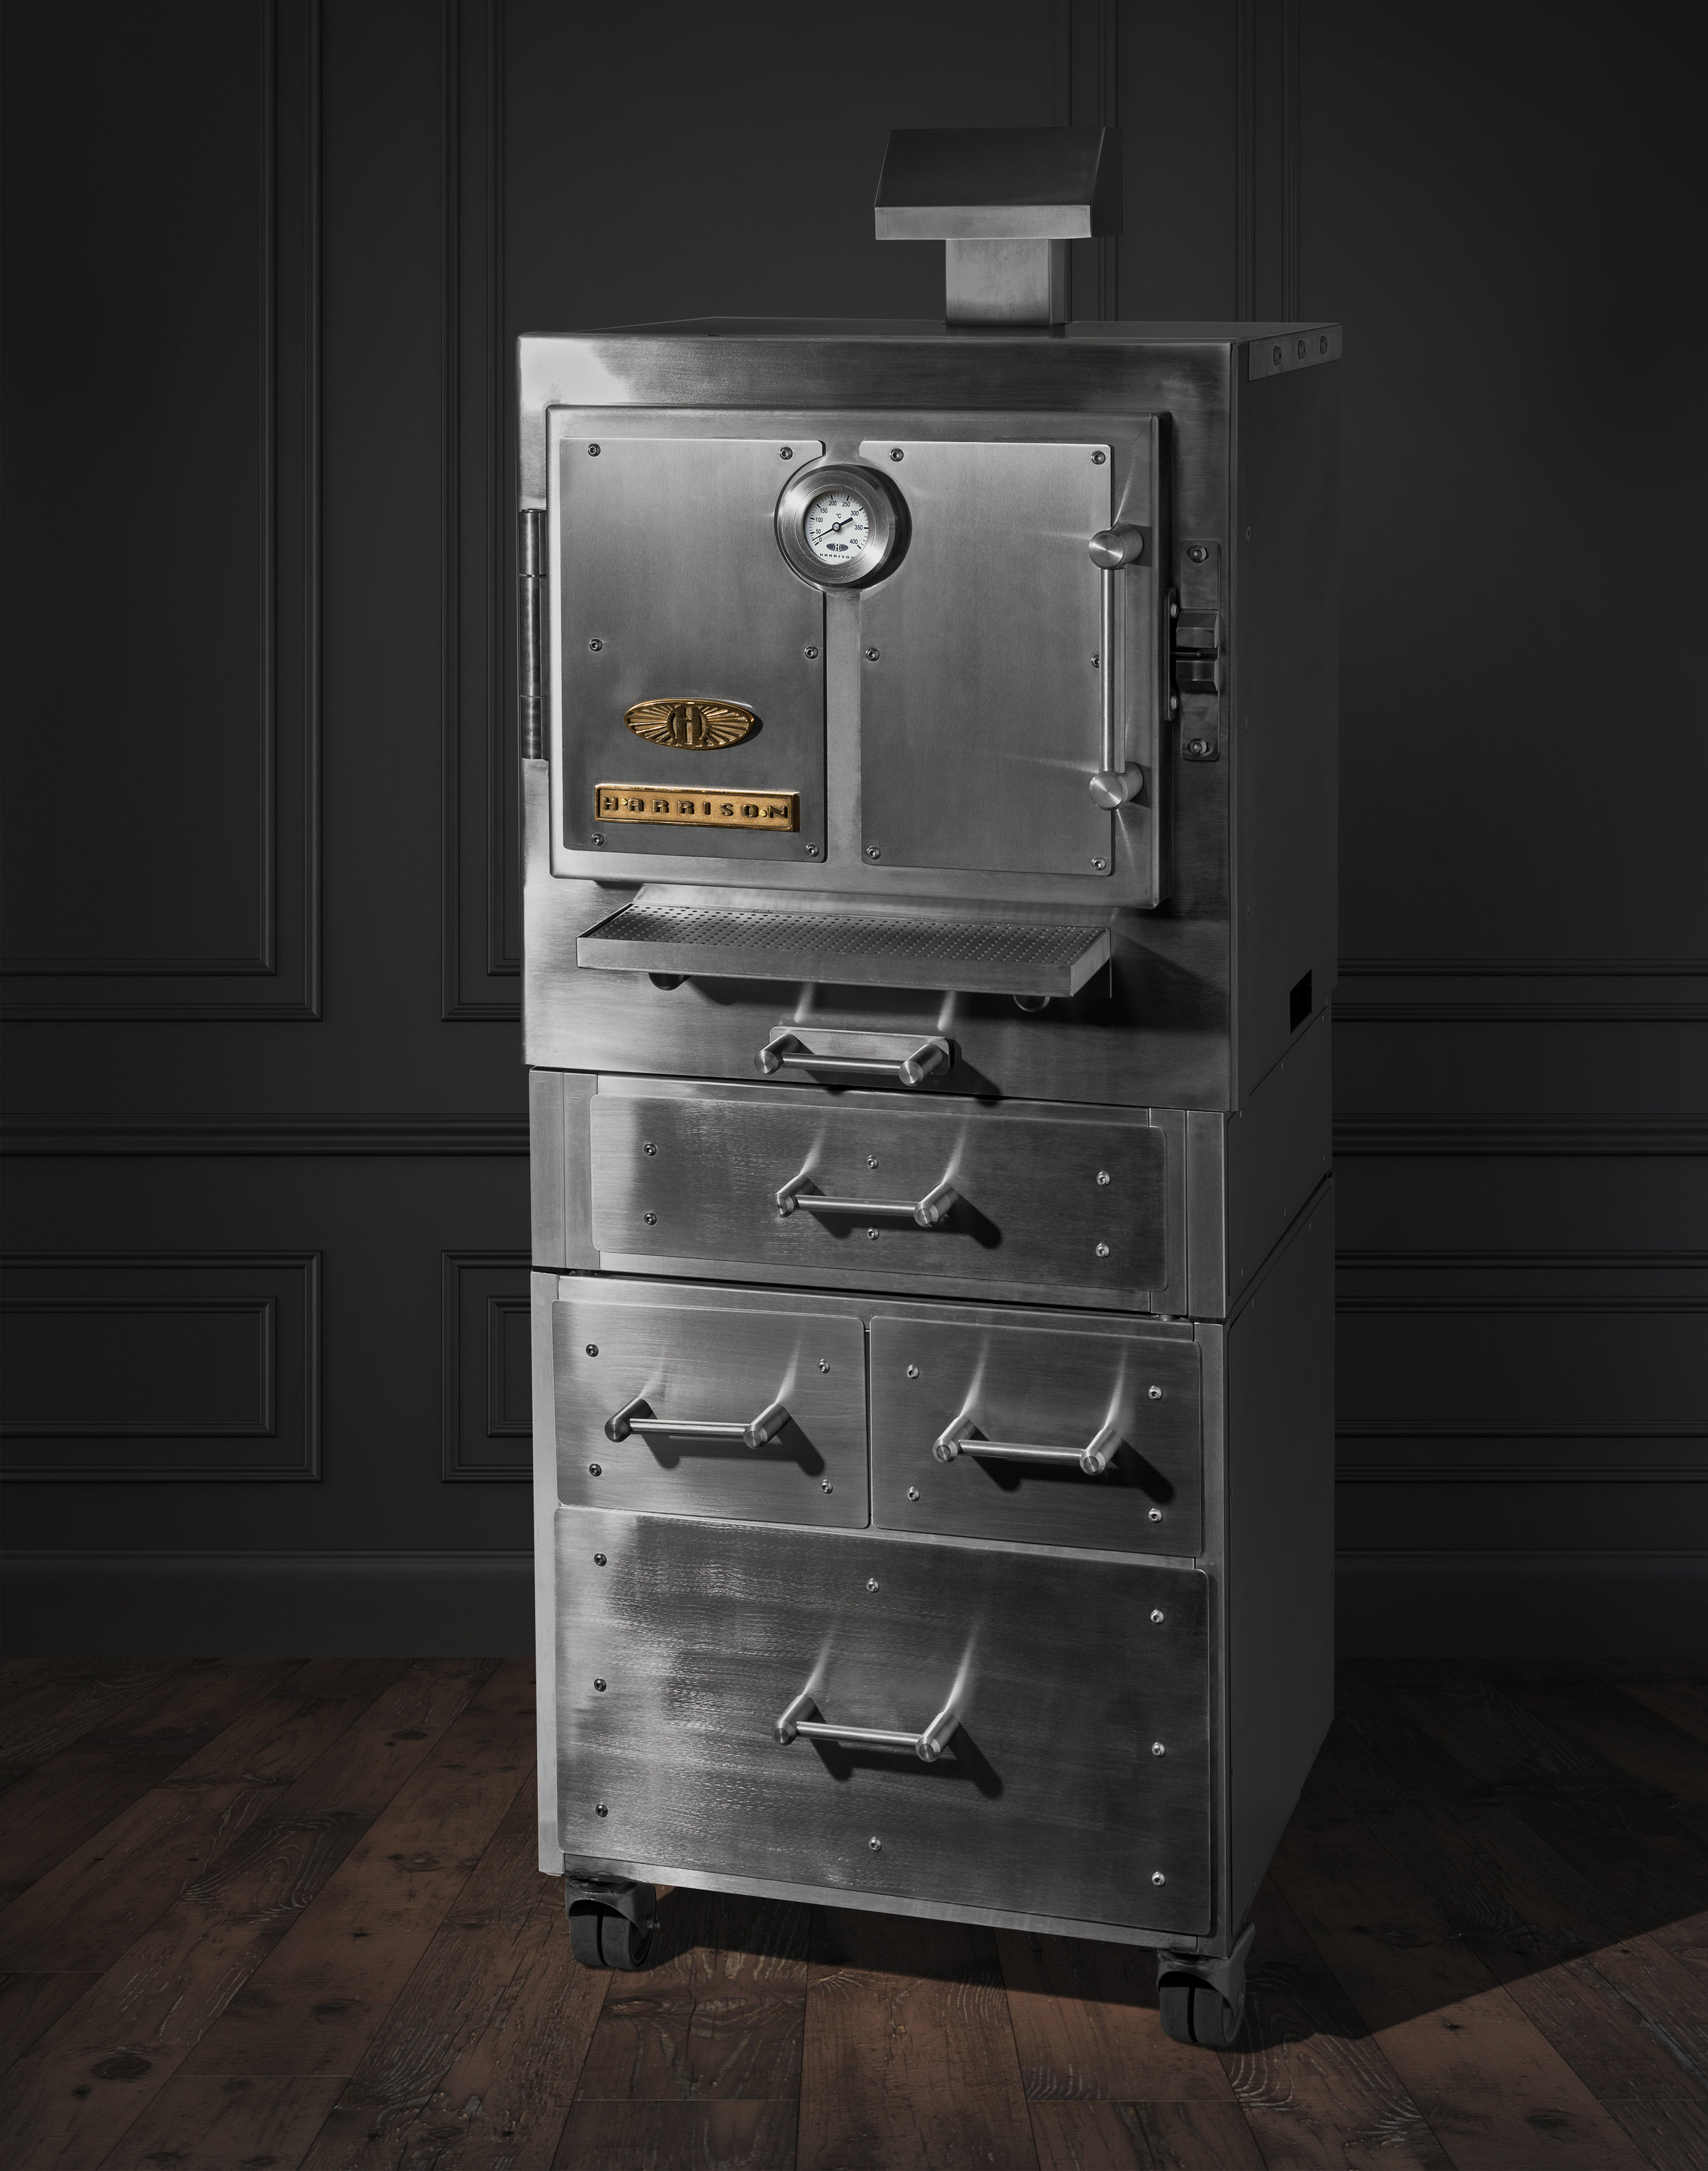 The Harrison 'S' Charcoal Oven